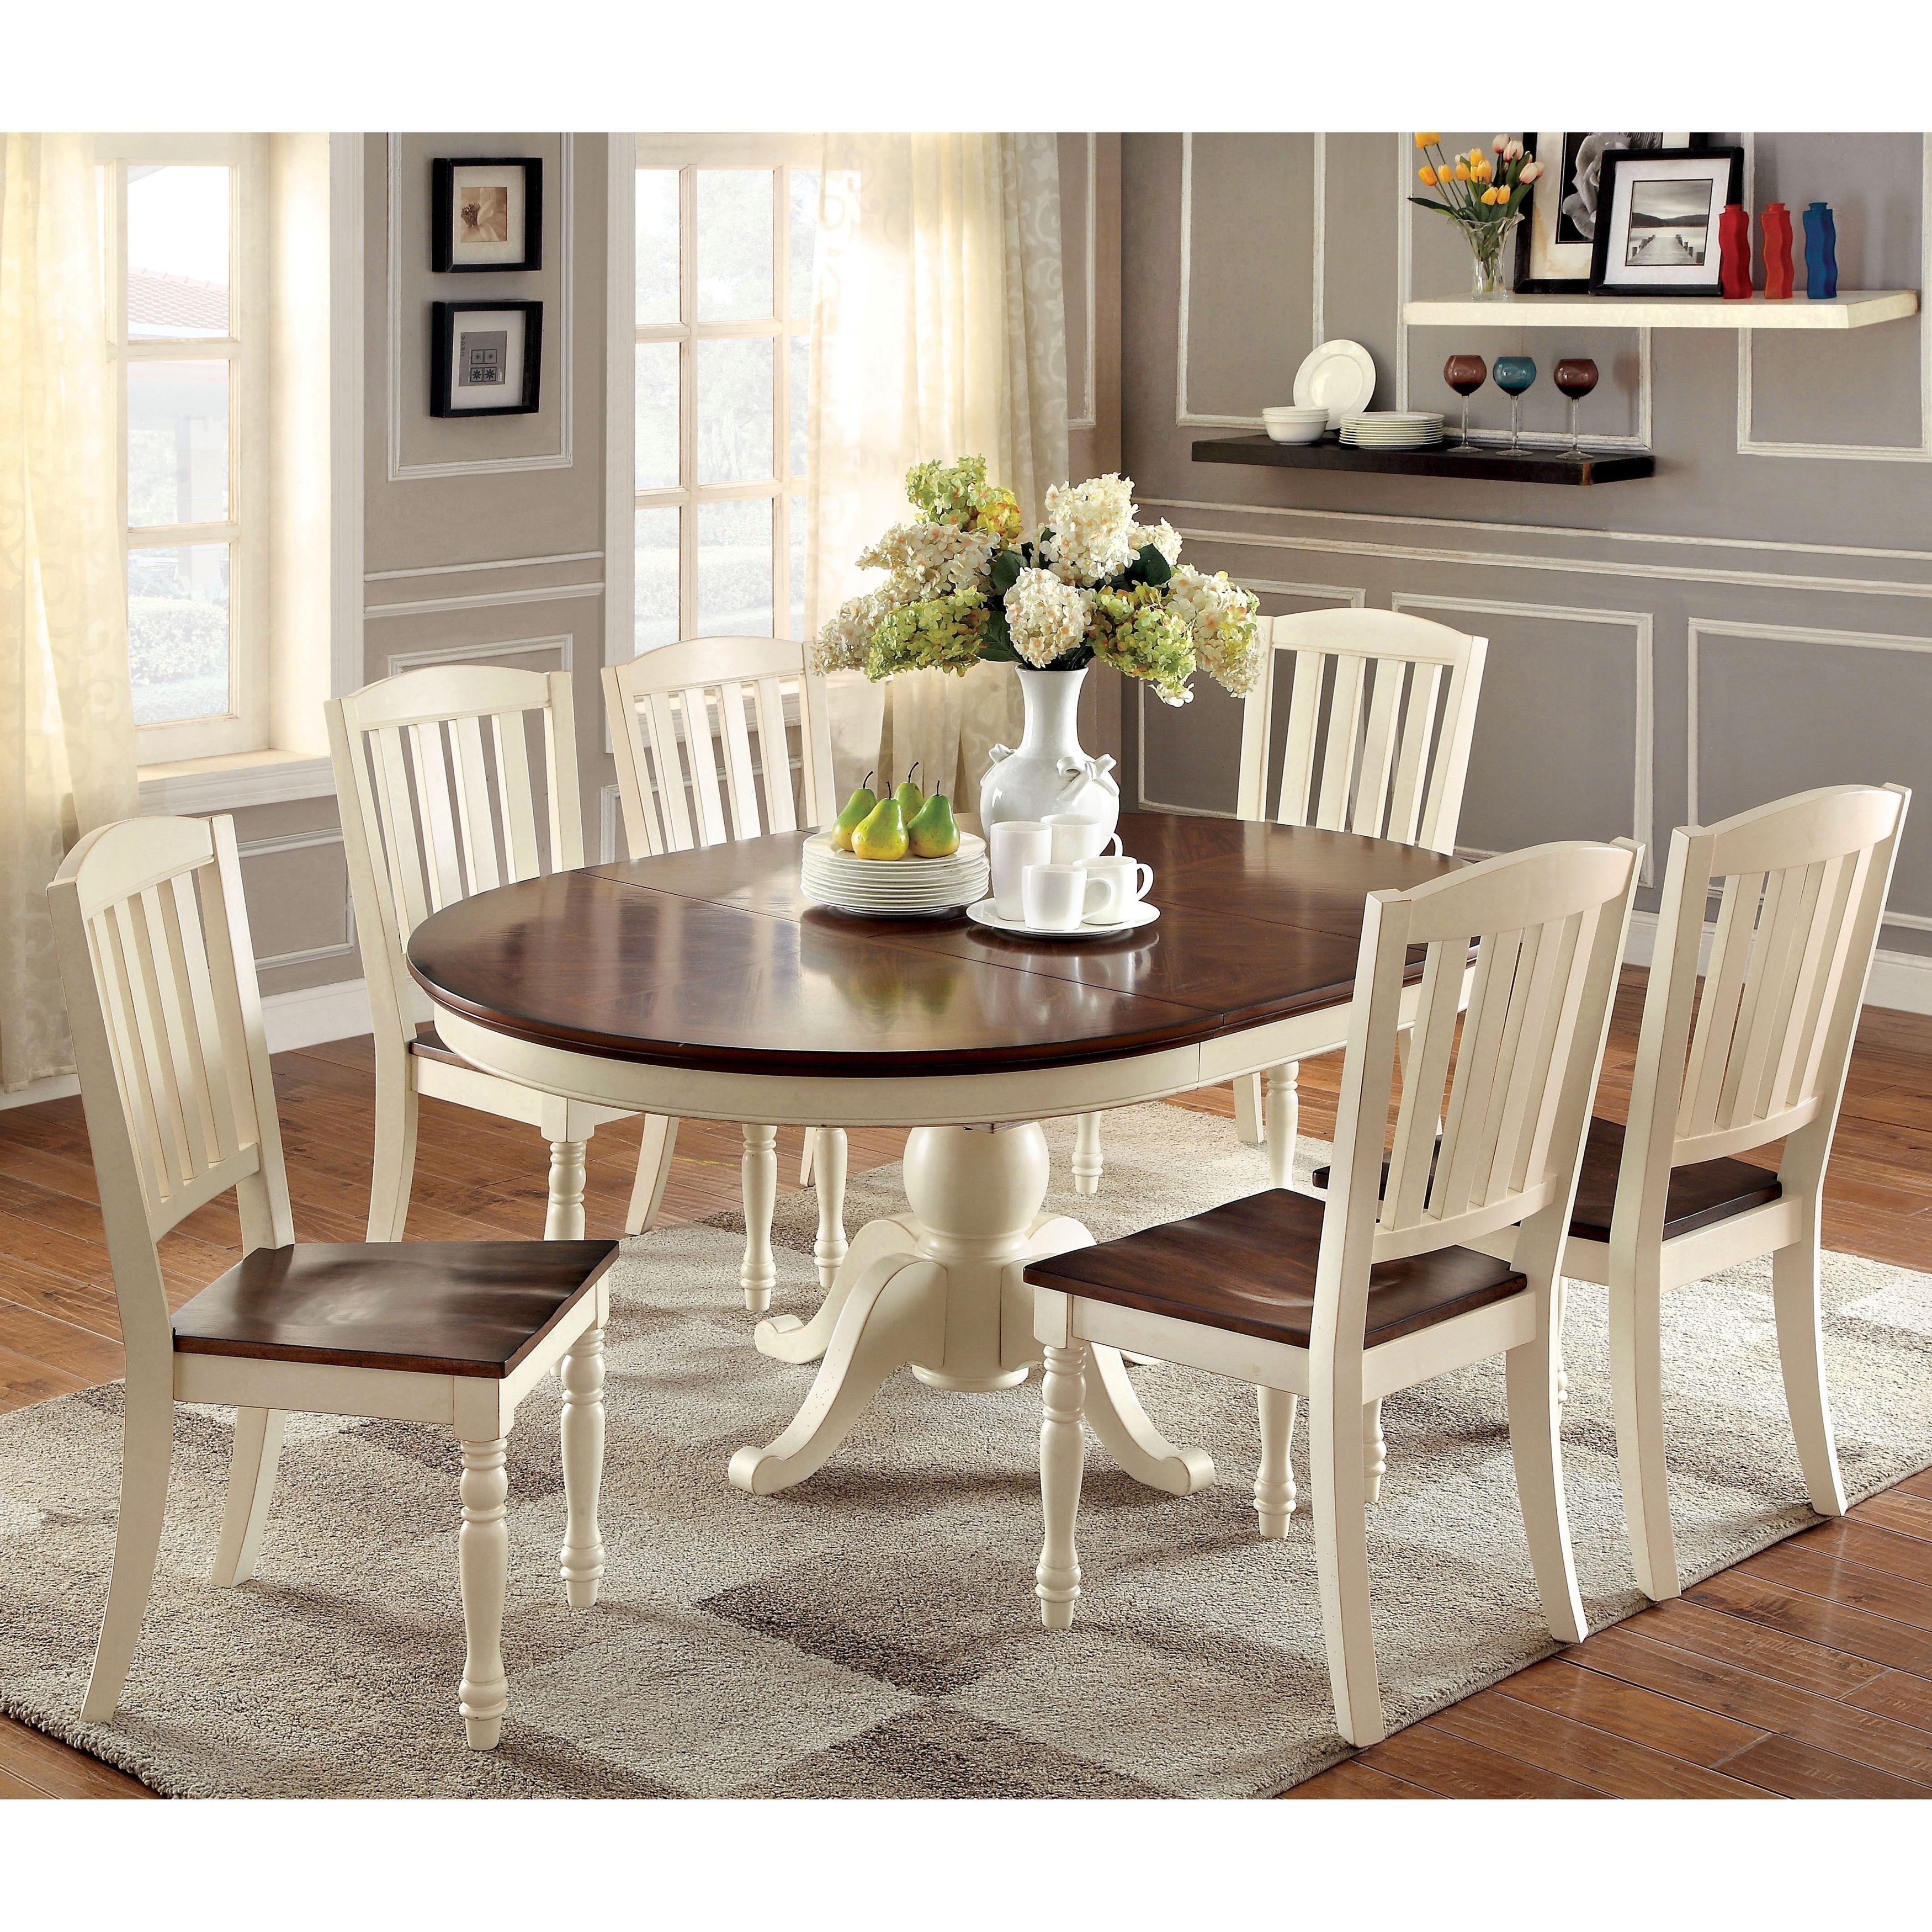 Furniture Of America Bethannie 7 Piece Cottage Style Oval Dining Set Within Most Recent Craftsman 5 Piece Round Dining Sets With Uph Side Chairs (View 24 of 25)